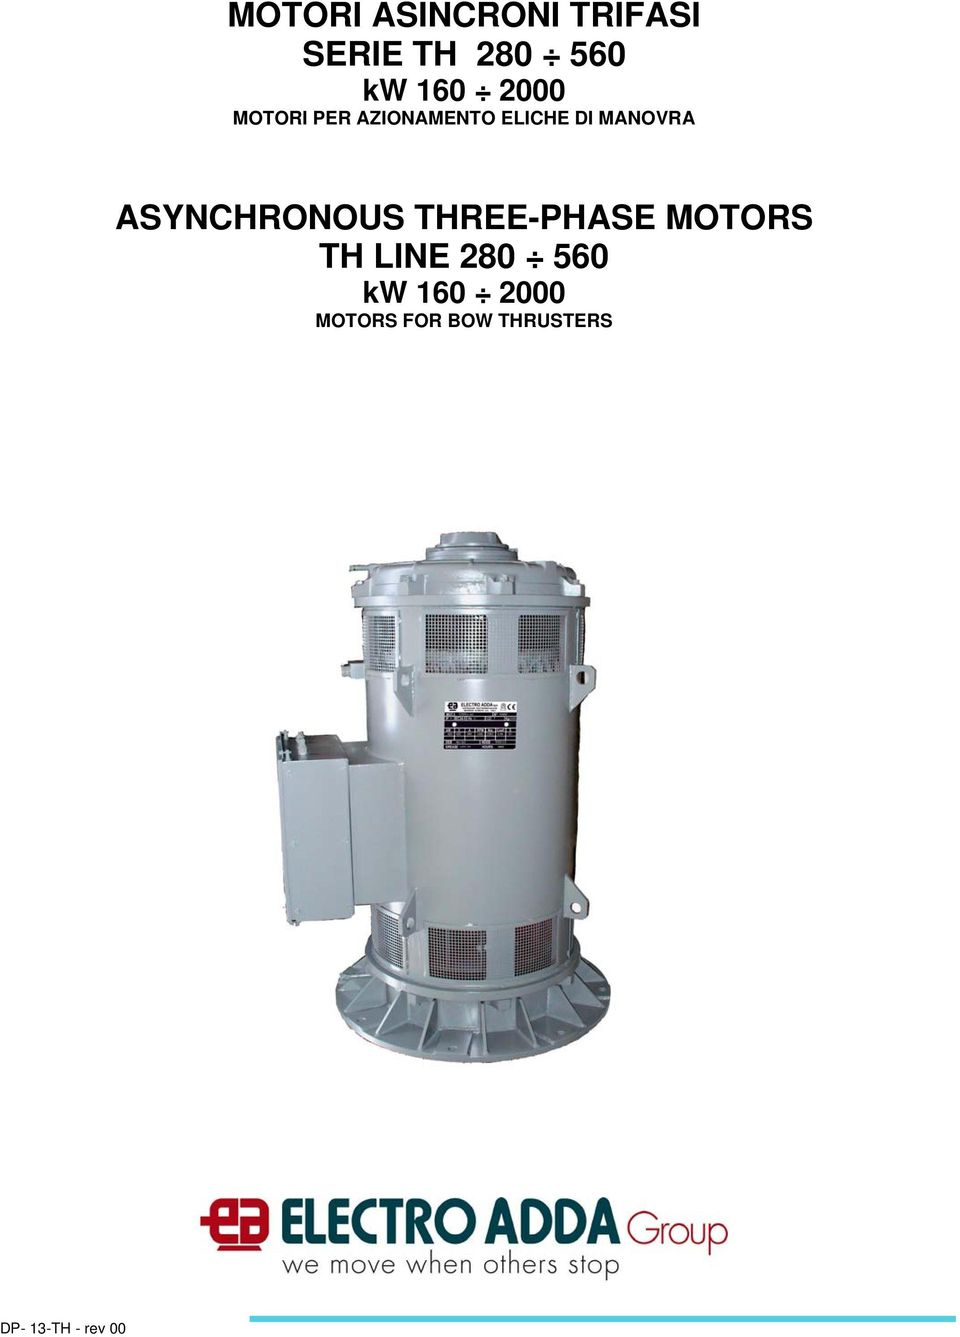 ASYNCHRONOUS THREE-PHASE MOTORS TH LINE 280 560